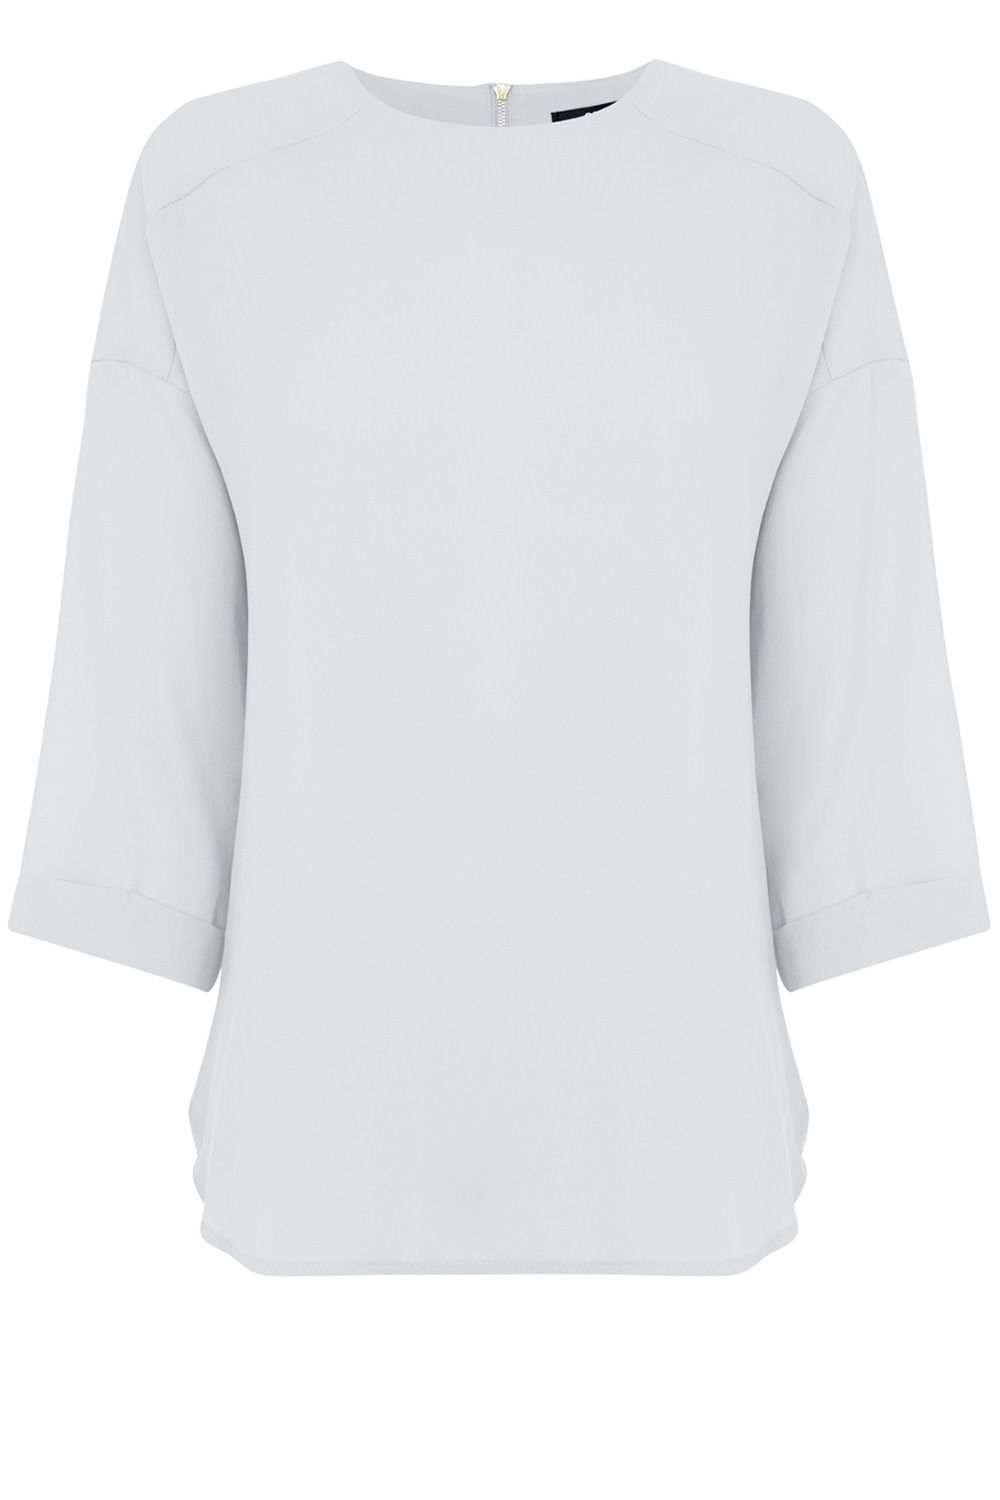 Drop sleeve woven top